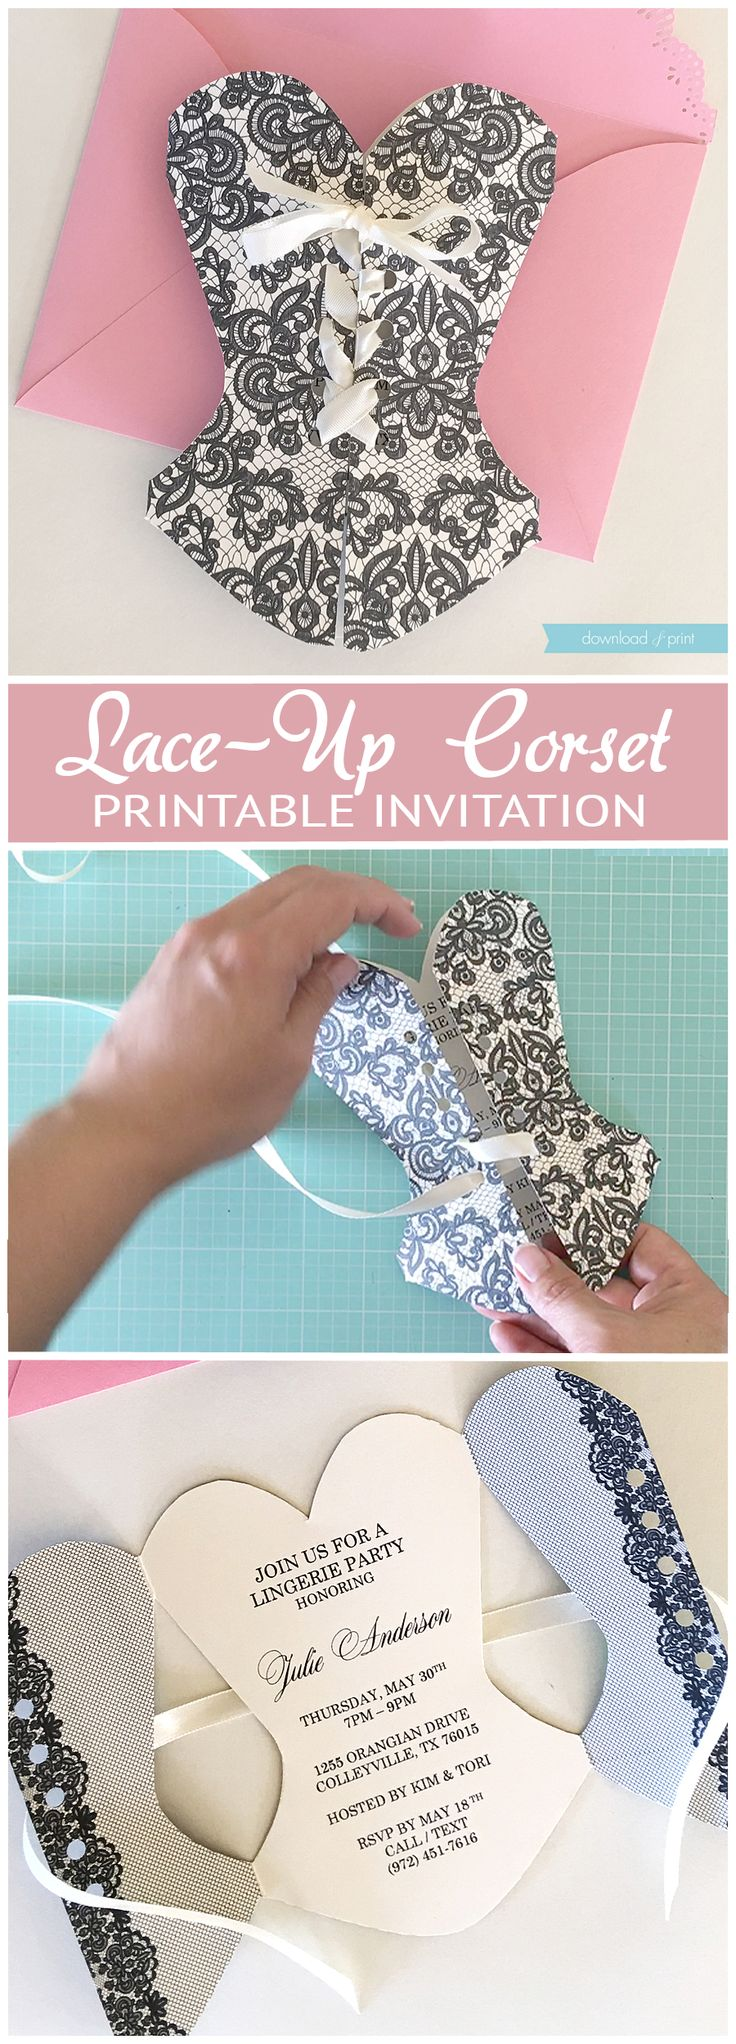 DIY lace-up corset invitation that's so easy to make. If you can lace a shoe you can lace this corset! Perfect for a lingerie shower or milestone birthday. – Tuana